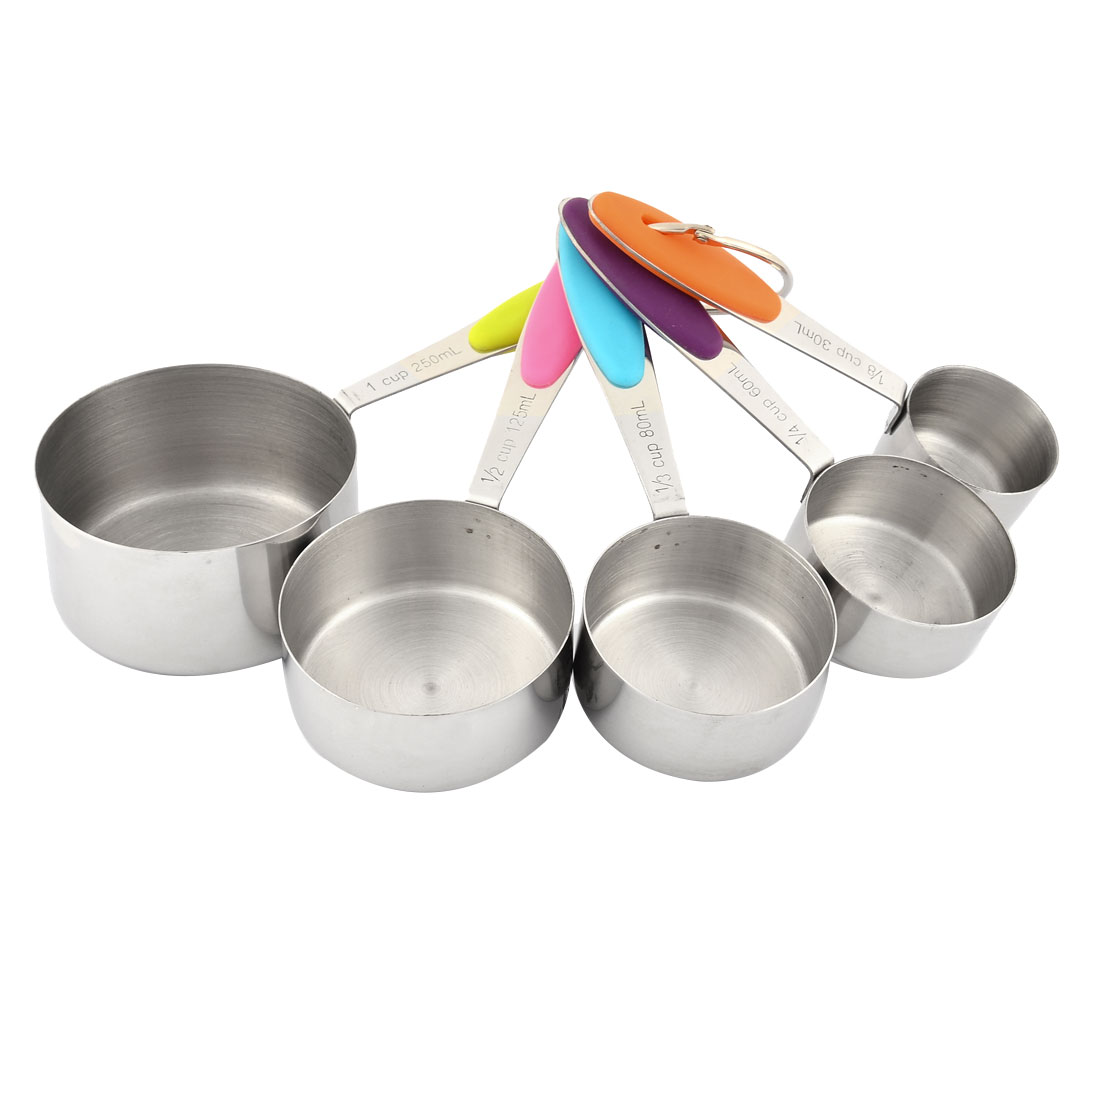 Stainless Steel Baking Cooking Tool Chili Powder Water Salt Sauce Milk Measuring Cup Silver Tone 5 in 1